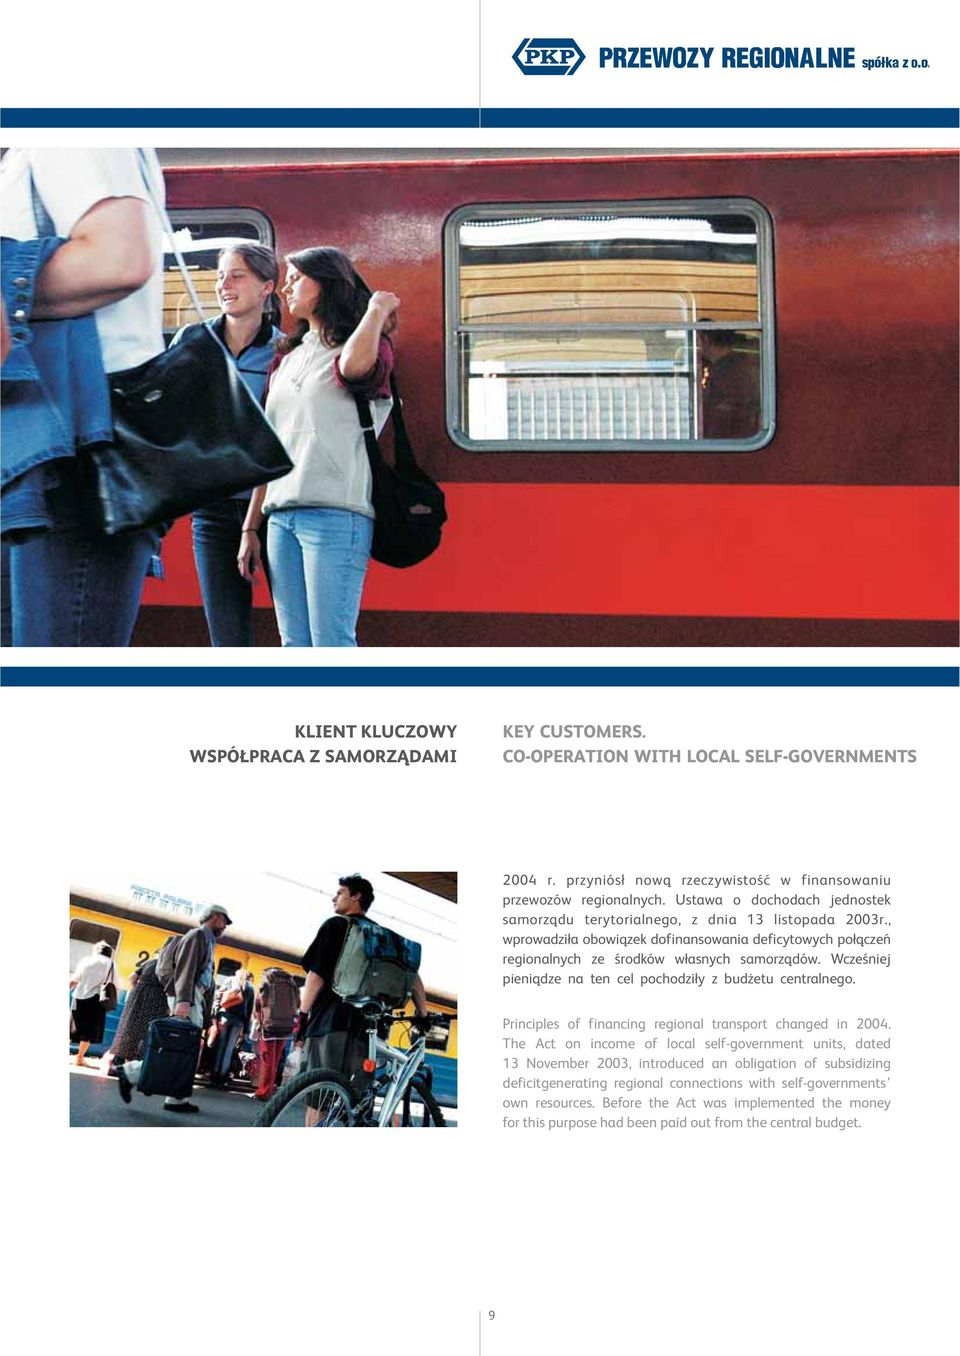 Wczeœniej pieni¹dze na ten cel pochodzi³y z bud etu centralnego. Principles of financing regional transport changed in 2004.